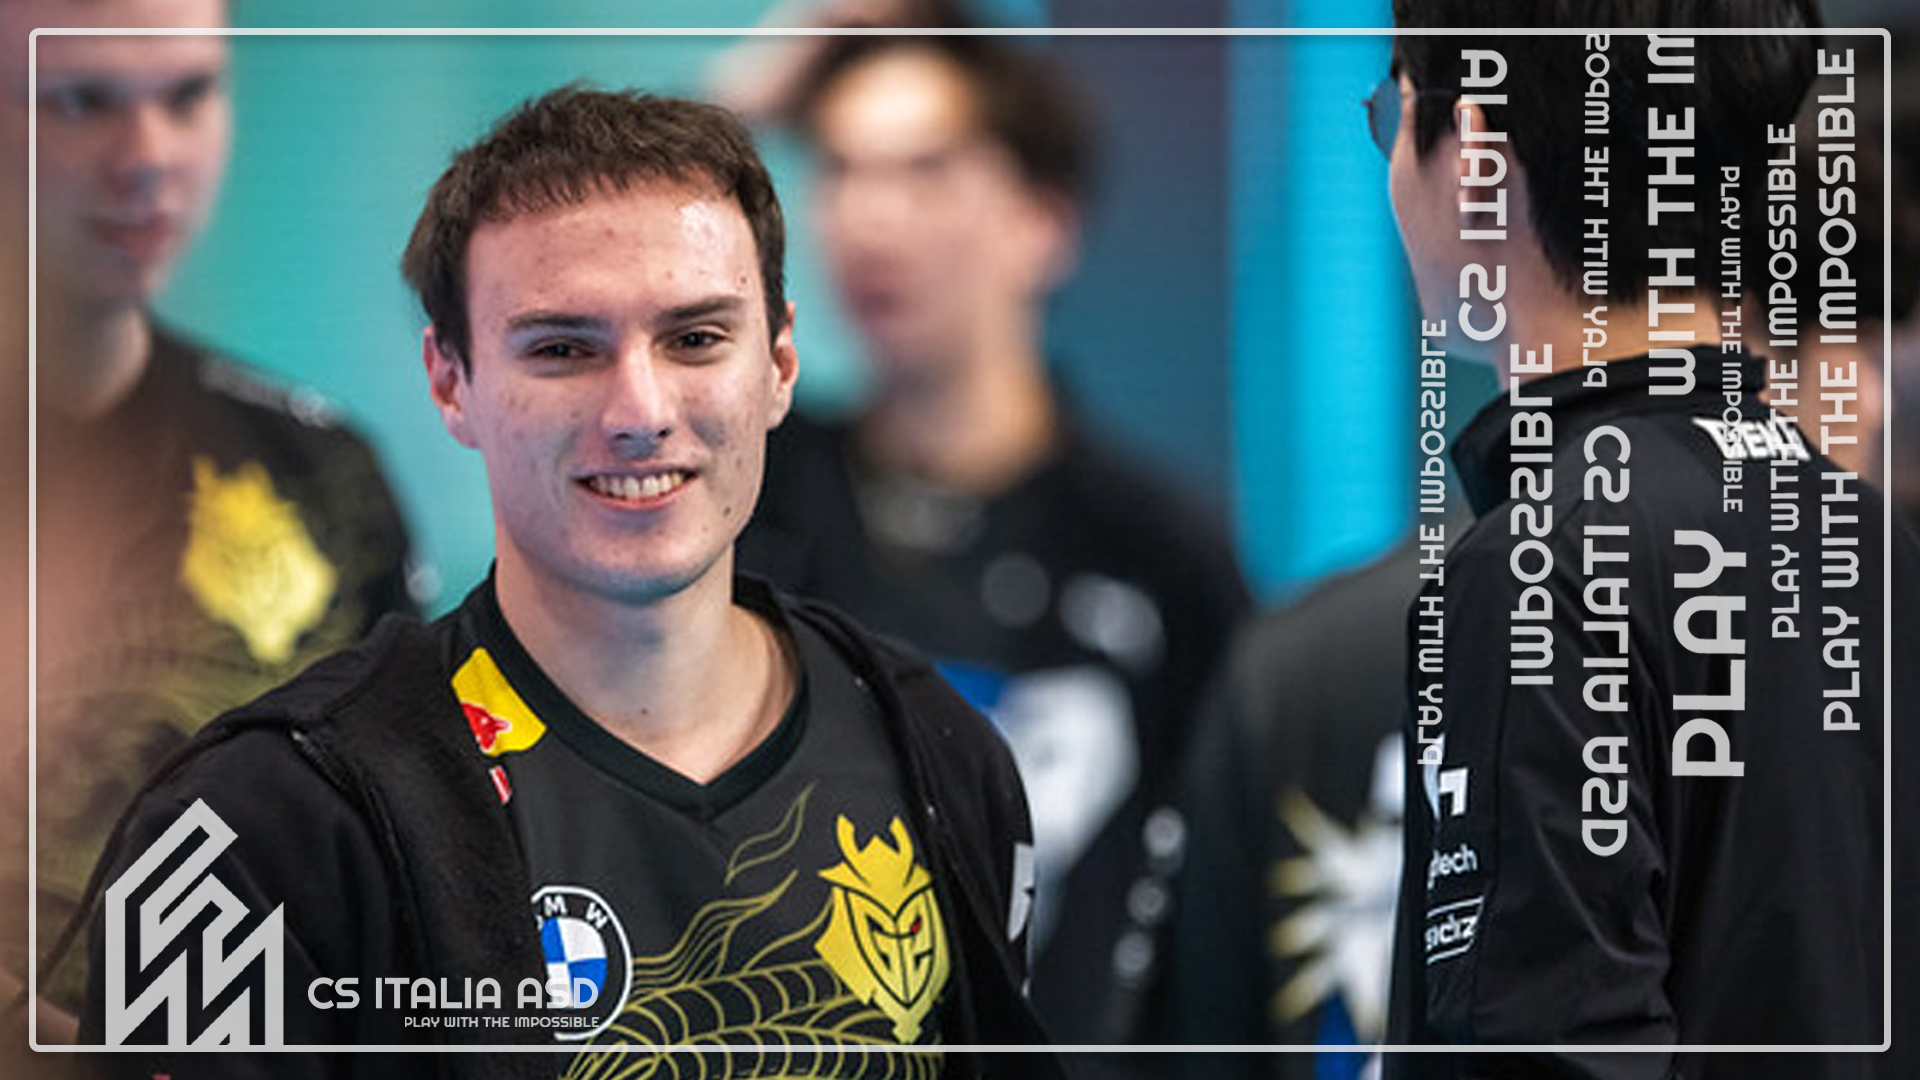 League of Legends: Perkz leaves G2!